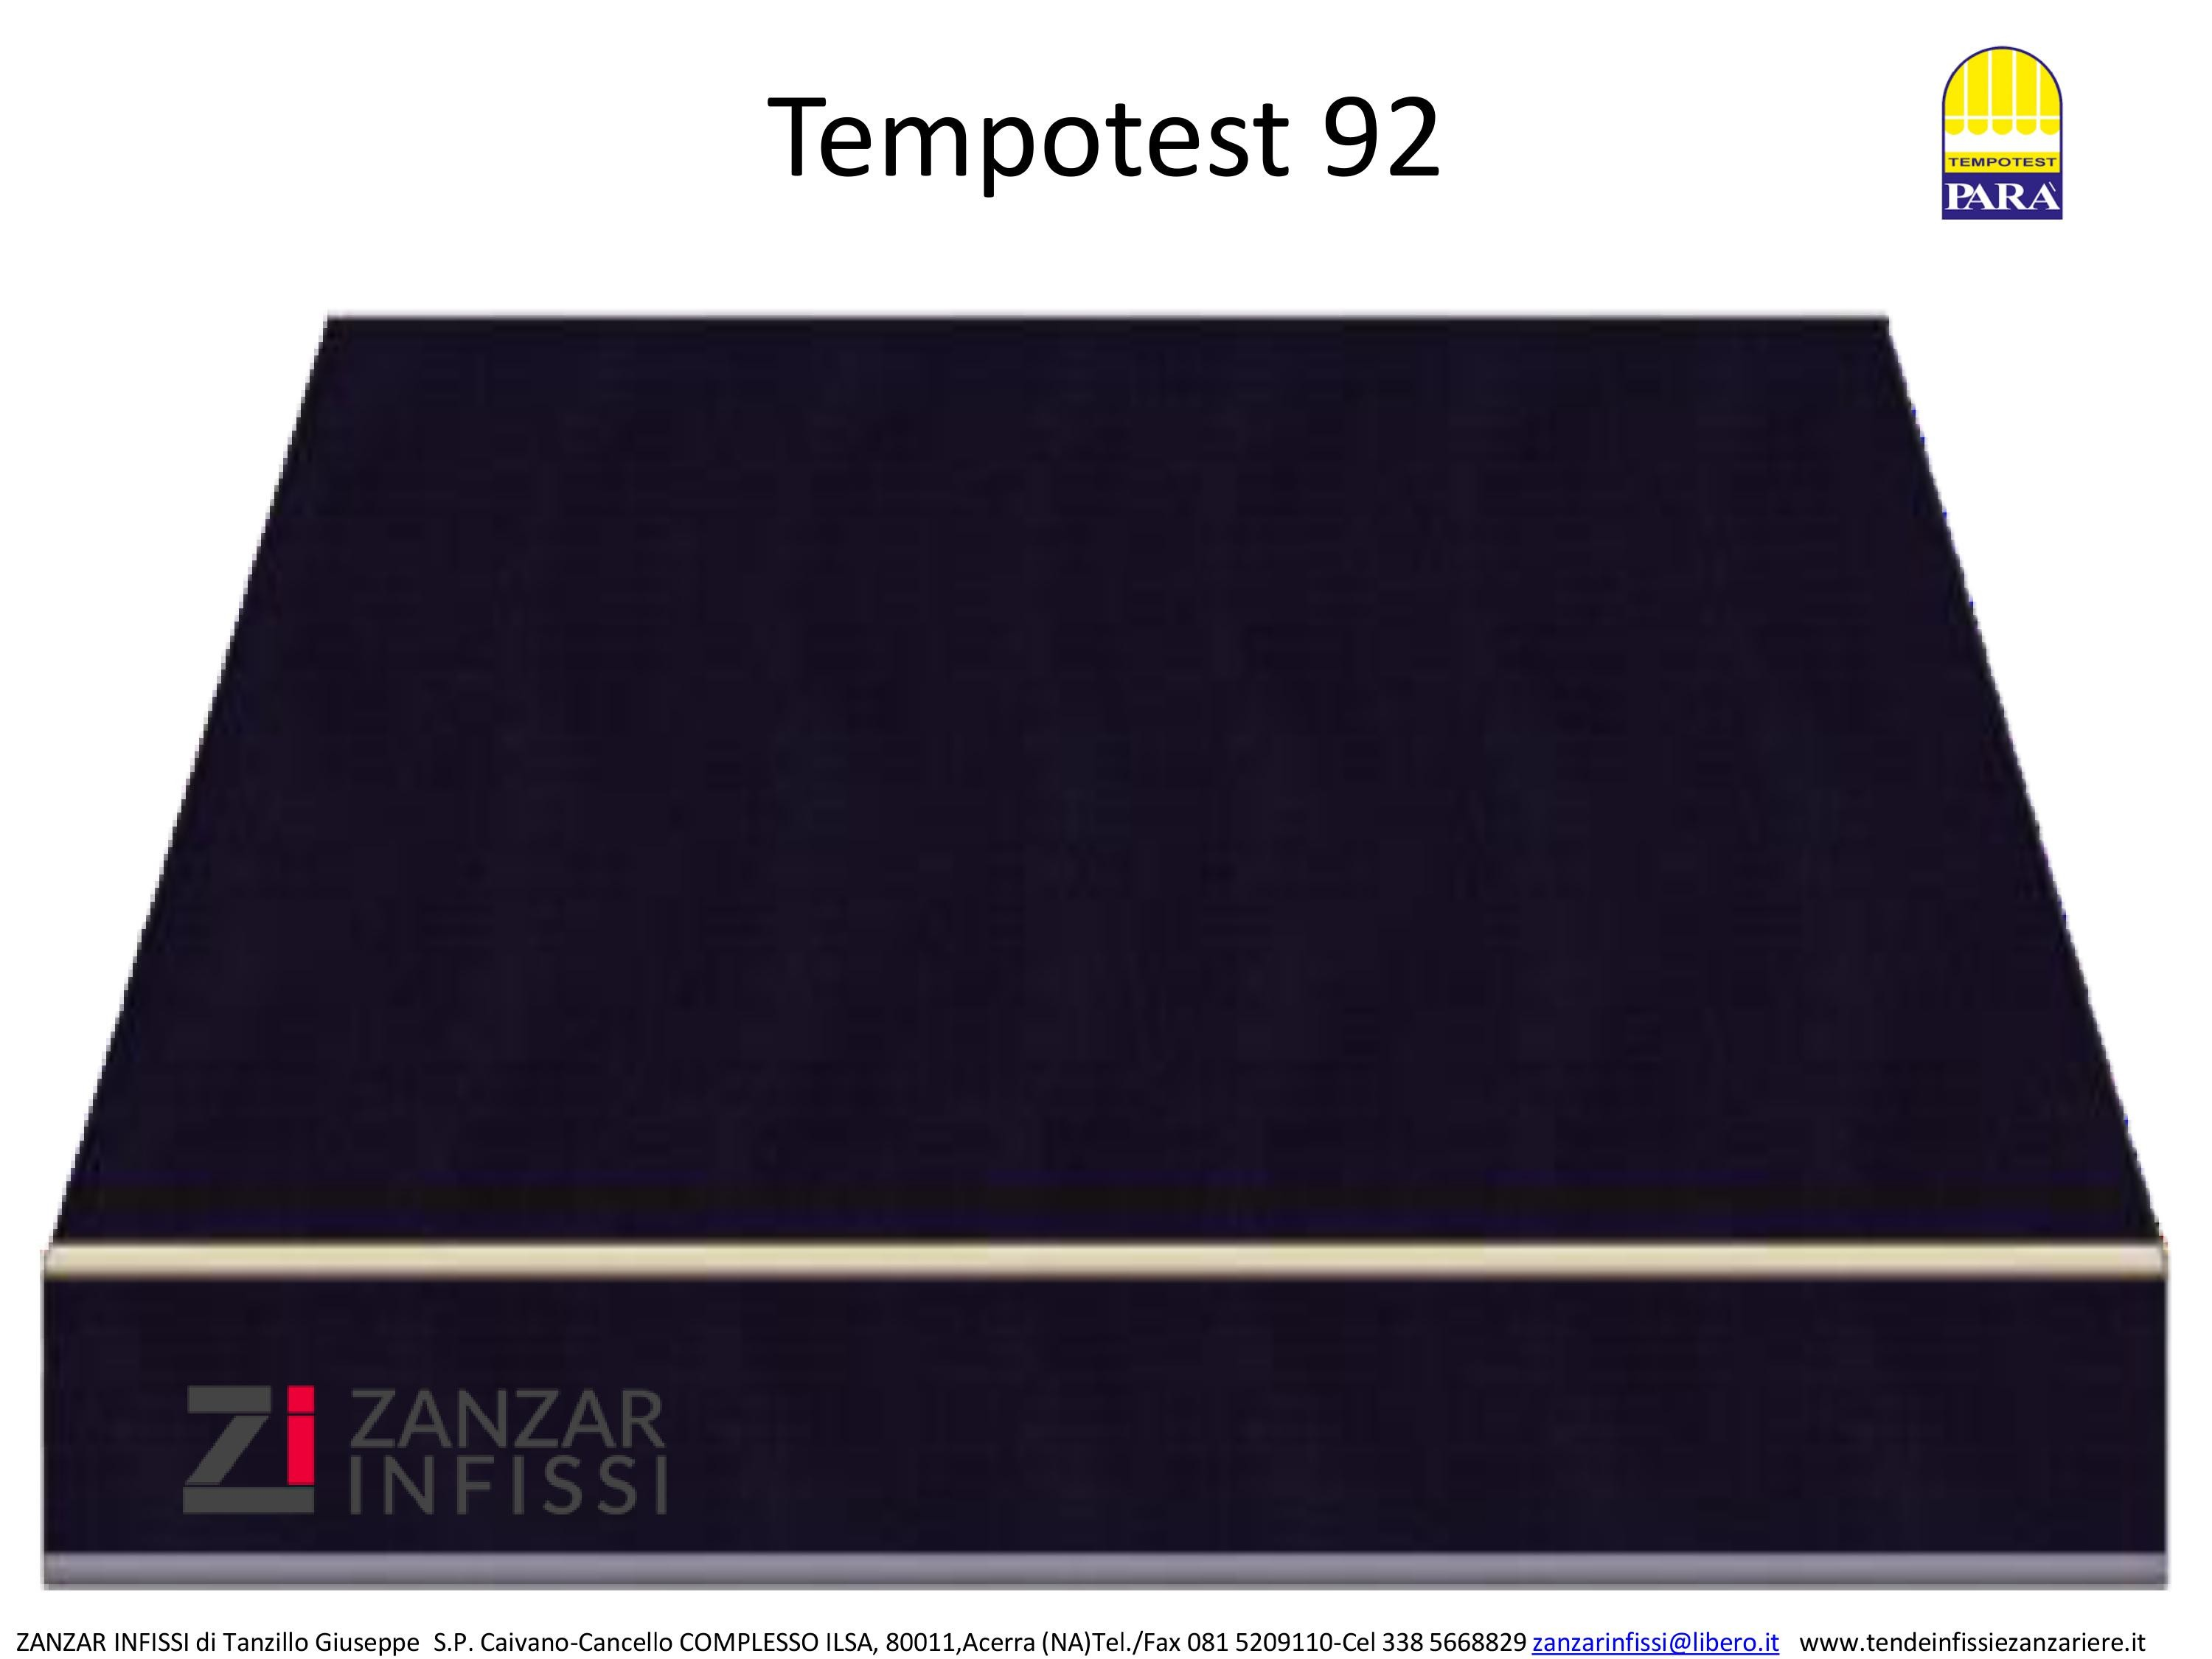 Tempotest 92